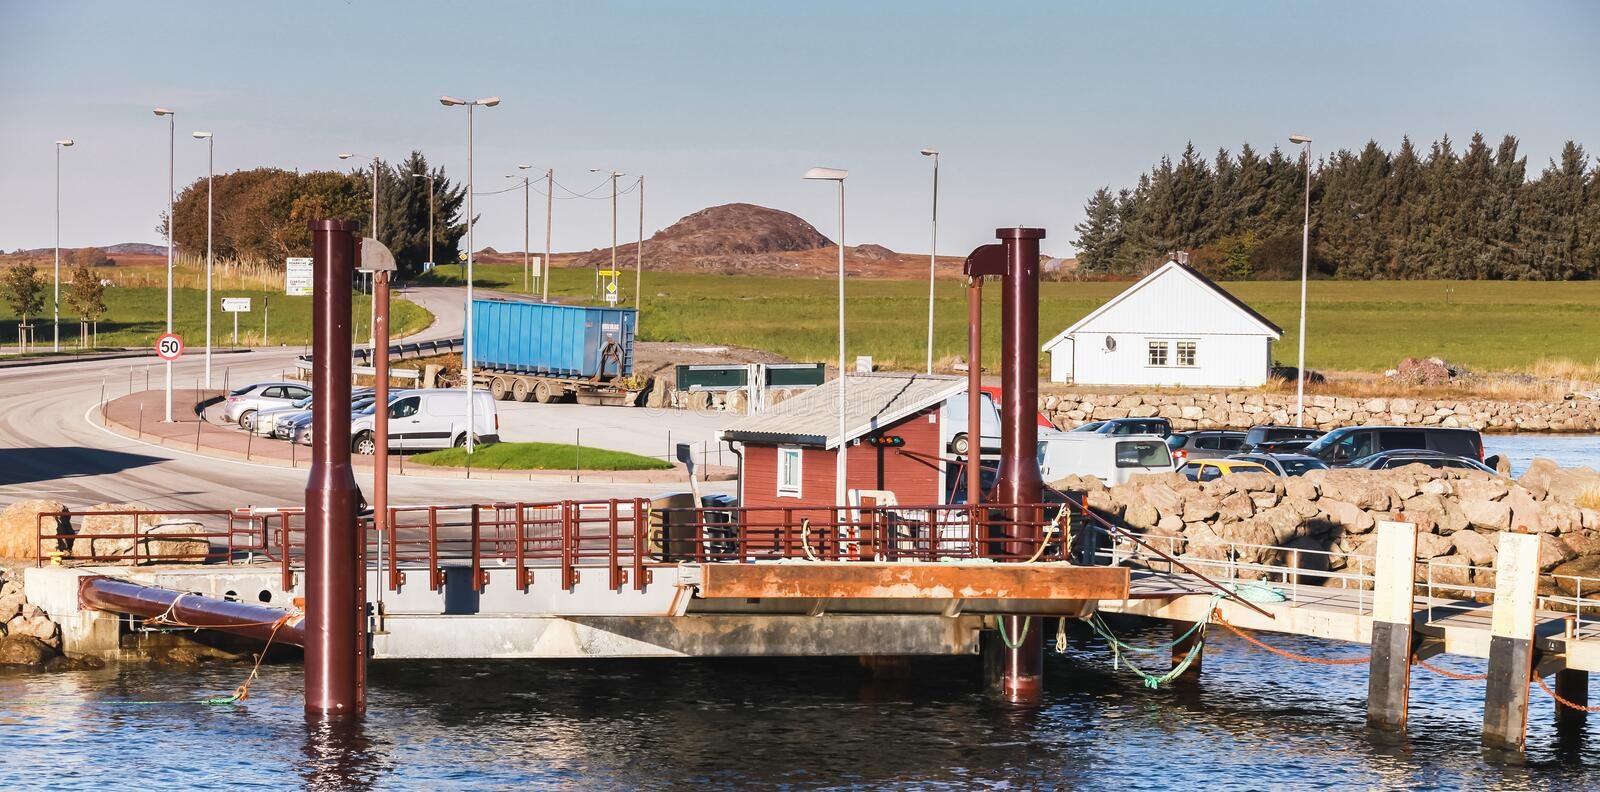 Ferry ramp and mooring pier in Norway royalty free stock photography